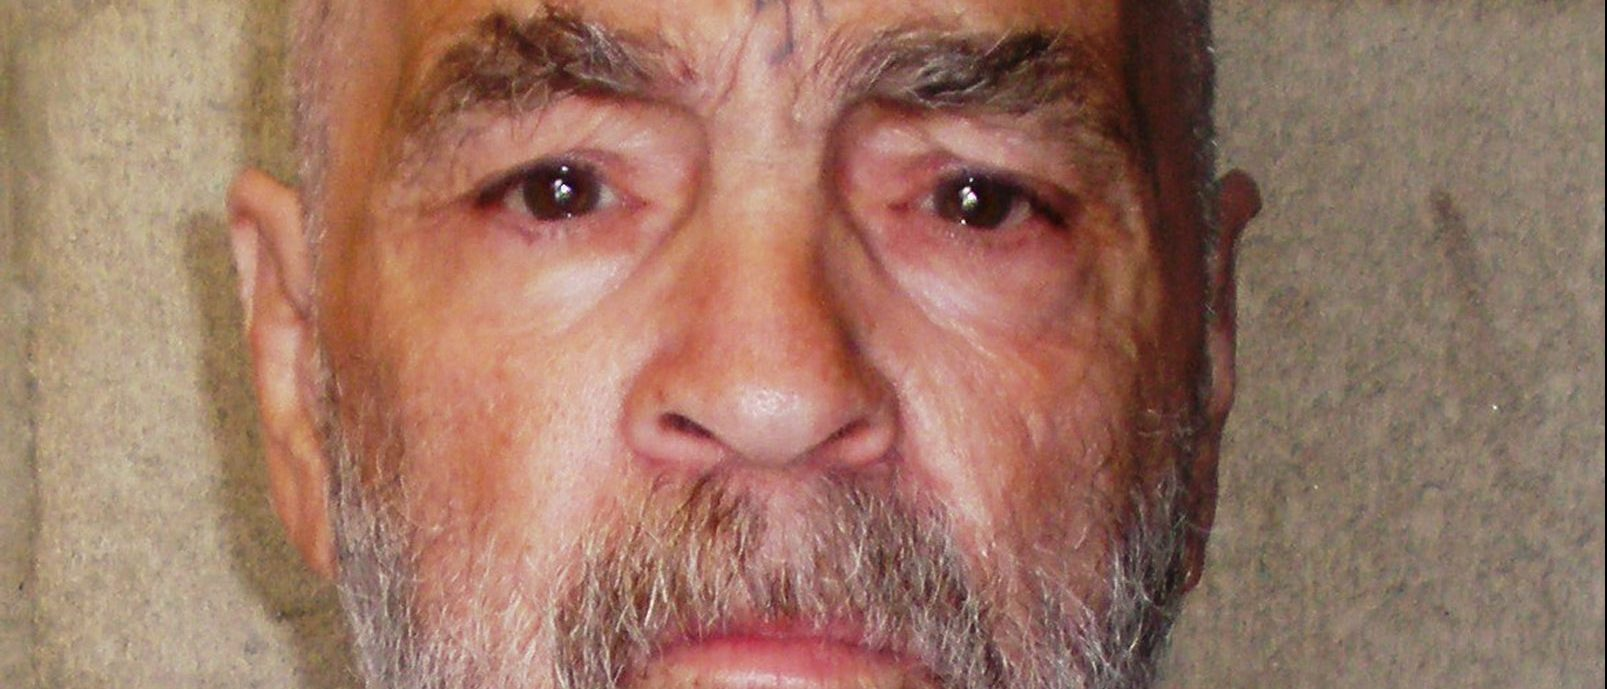 """CORCORAN STATE PRISON - MARCH 18: In this handout photo from the California Department of Corrections and Rehabilitation, Charles Manson, 74, is seen March 18, 2009 at Corcoran State Prison, California. Manson is serving a life sentence for conspiring to murder seven people during the """"Manson family"""" killings in 1969. The picture was taken as a regular update of the prison's files. (Photo by California Department of Corrections and Rehabilitation via Getty Images)"""